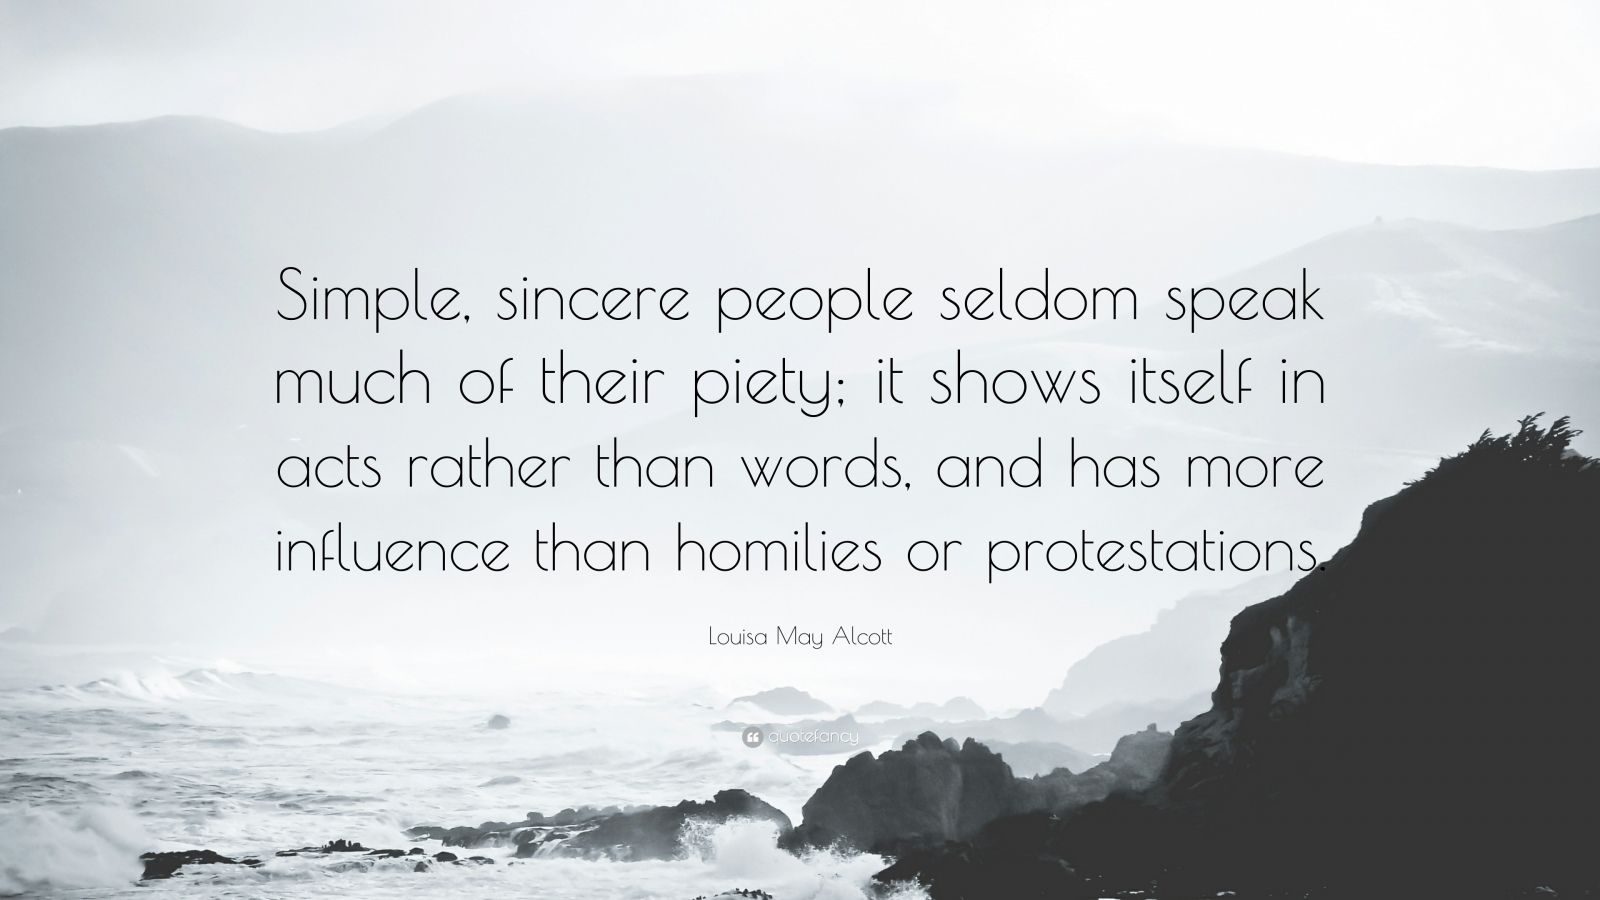 """Louisa May Alcott Quote: """"Simple, sincere people seldom speak much of their piety; it shows itself in acts rather than words, and has more influence than homilies or protestations."""""""